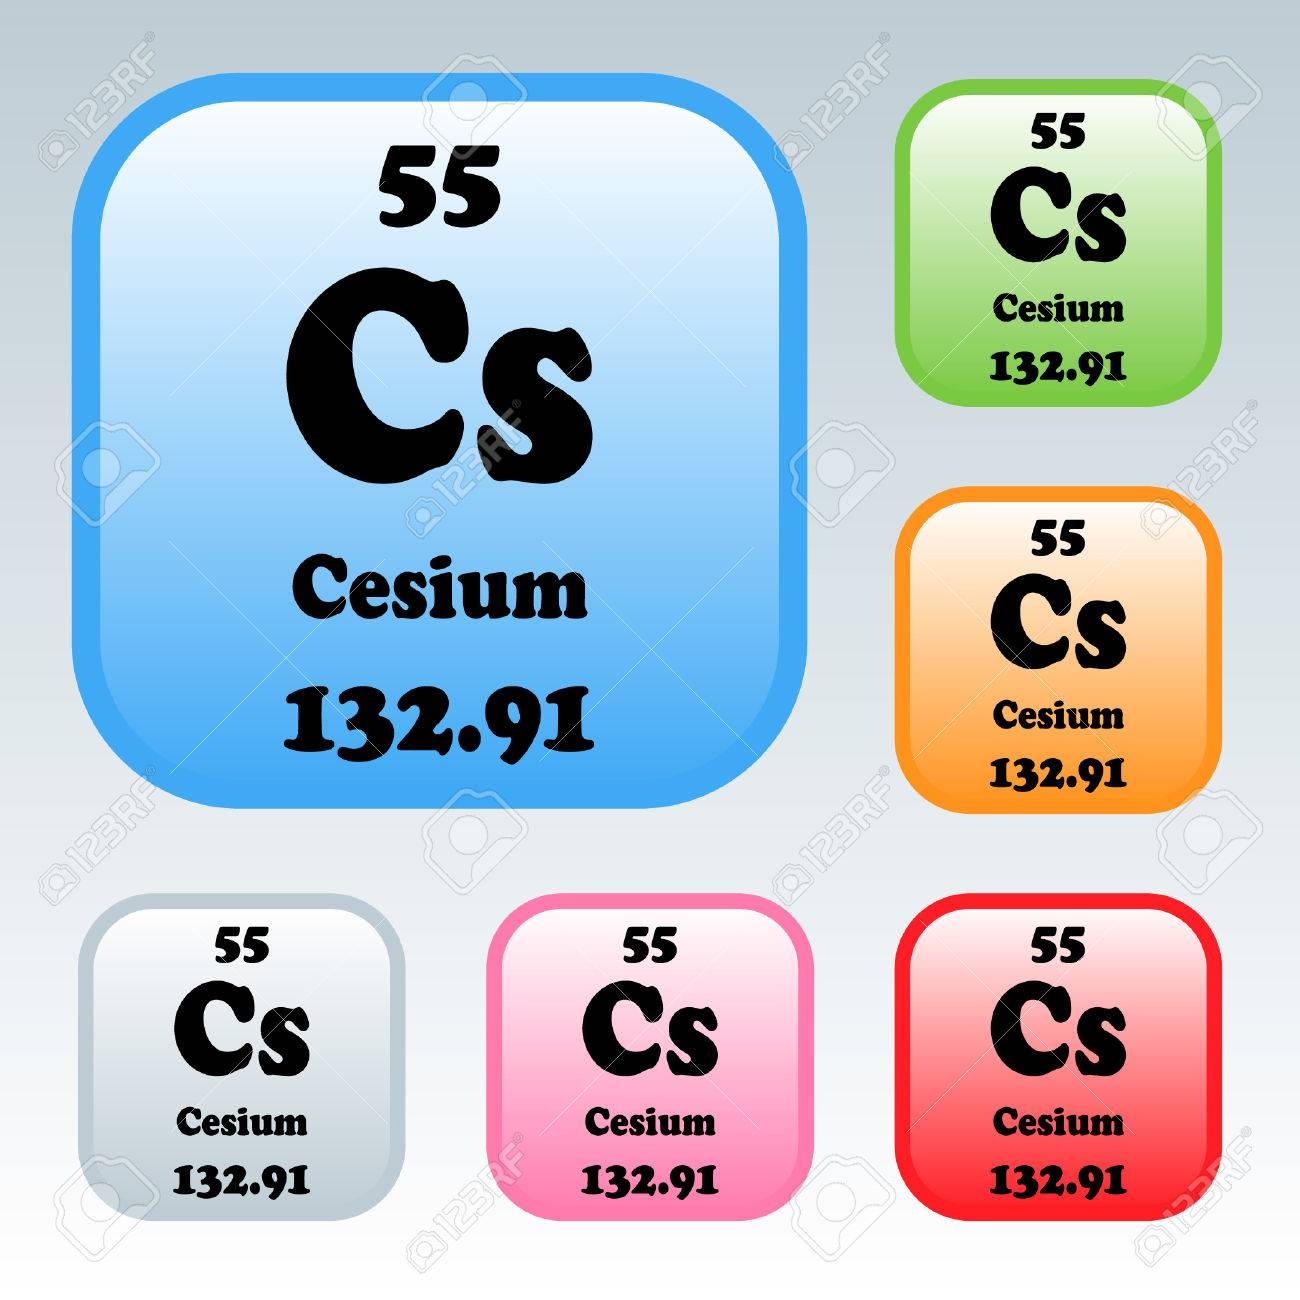 Cesium symbol periodic table image collections periodic table images cesium symbol periodic table image collections periodic table images the periodic table of the elements cesium gamestrikefo Image collections